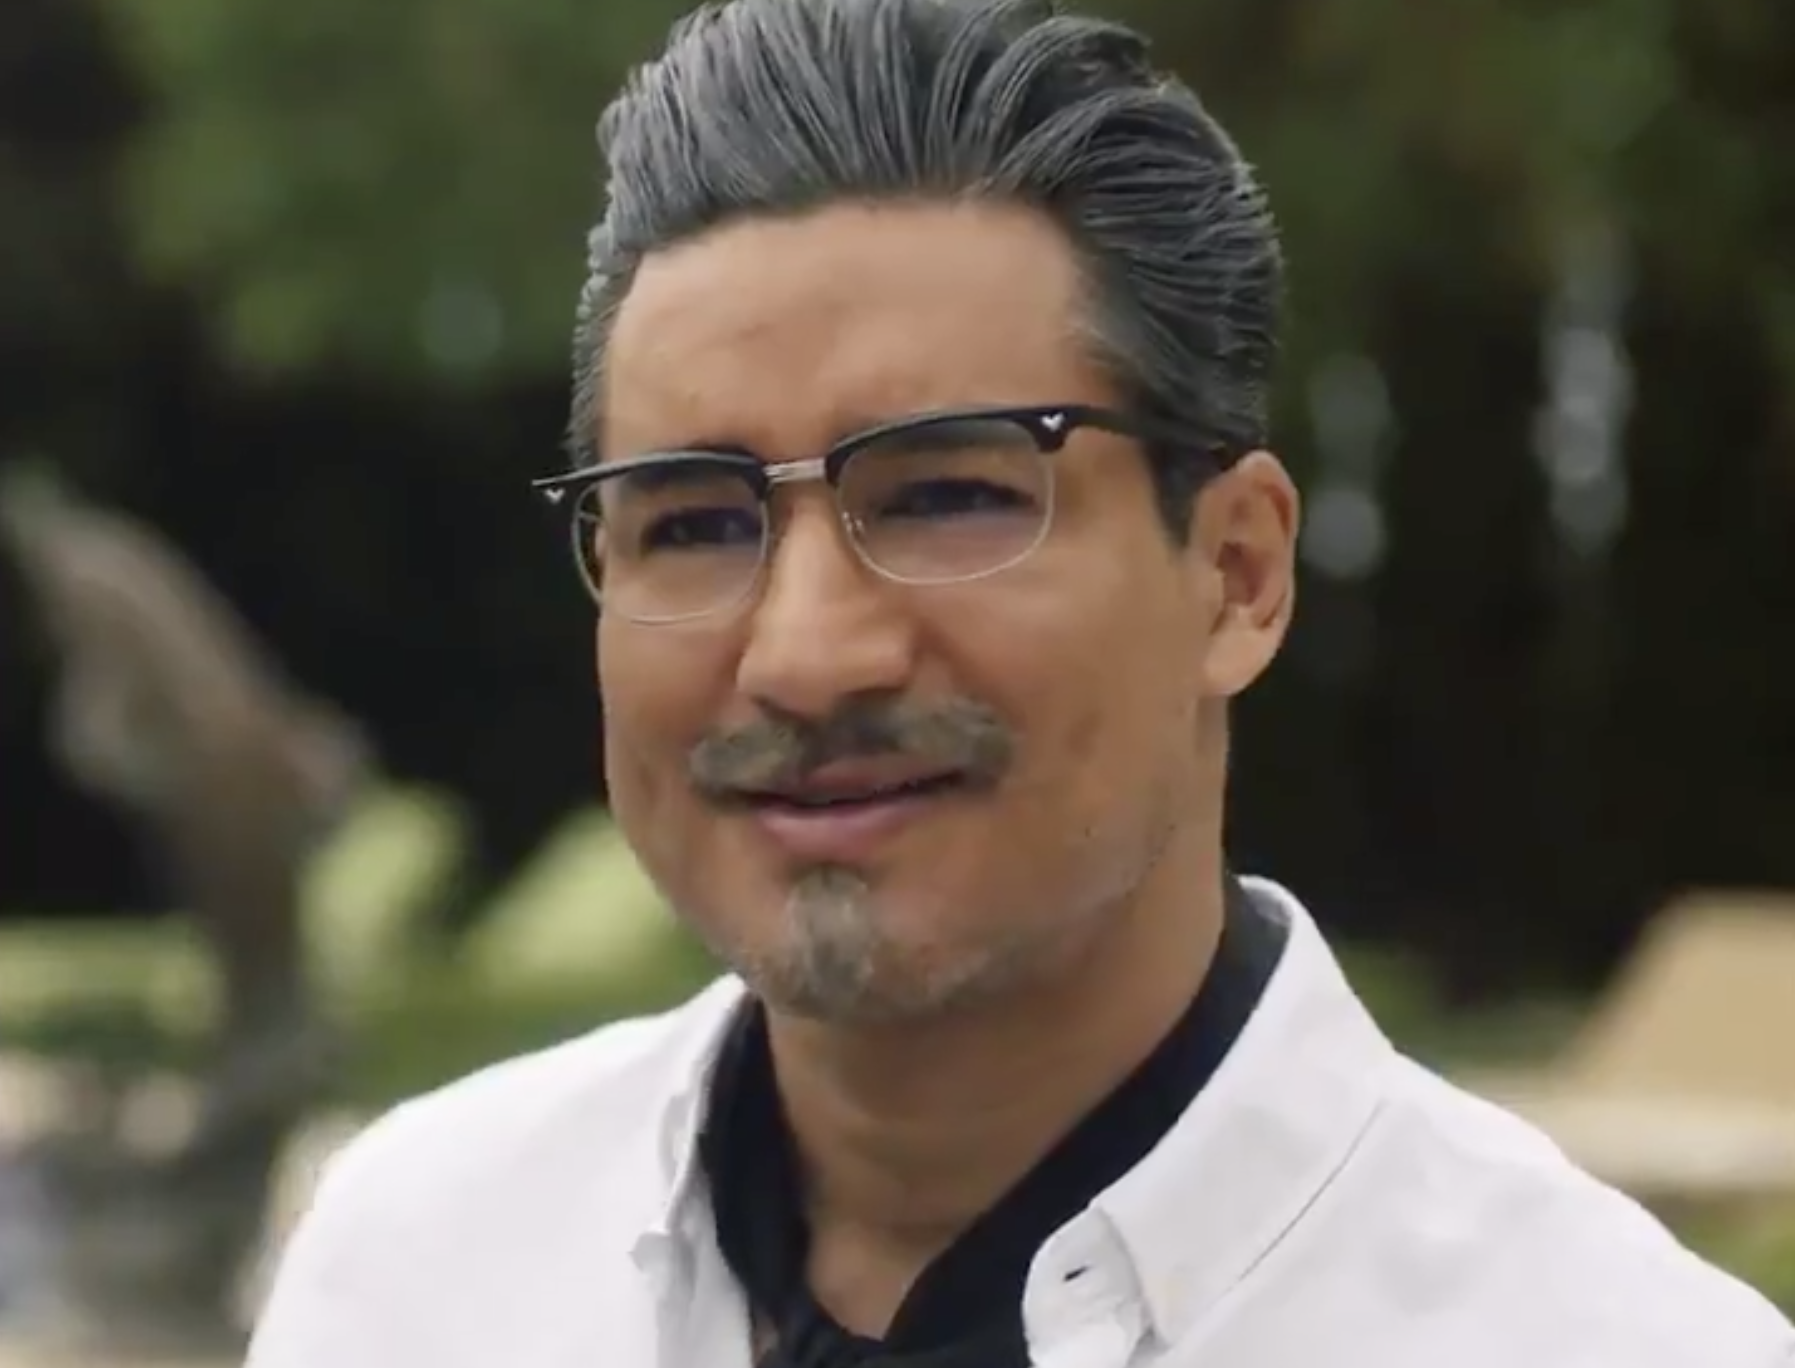 A handsome latino man with gray slicked back hair and a goatee stands outside a large estate dressed in a white shirt, black ascot, and black framed glasses.